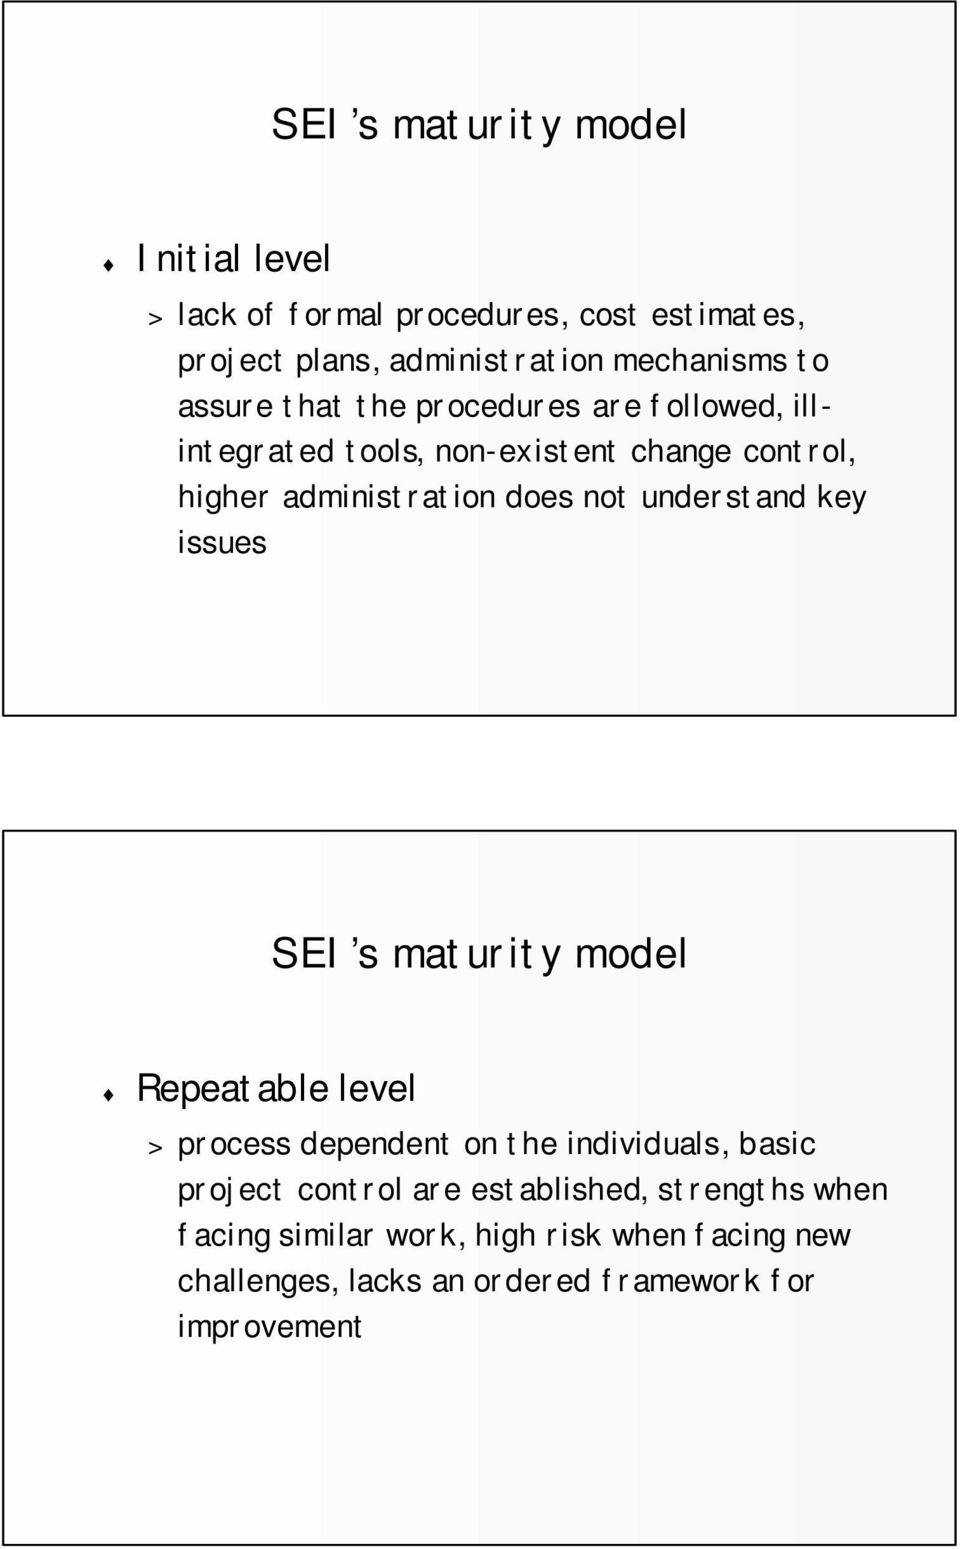 understand key issues SEI s maturity model Repeatable level > process  dependent on the individuals,